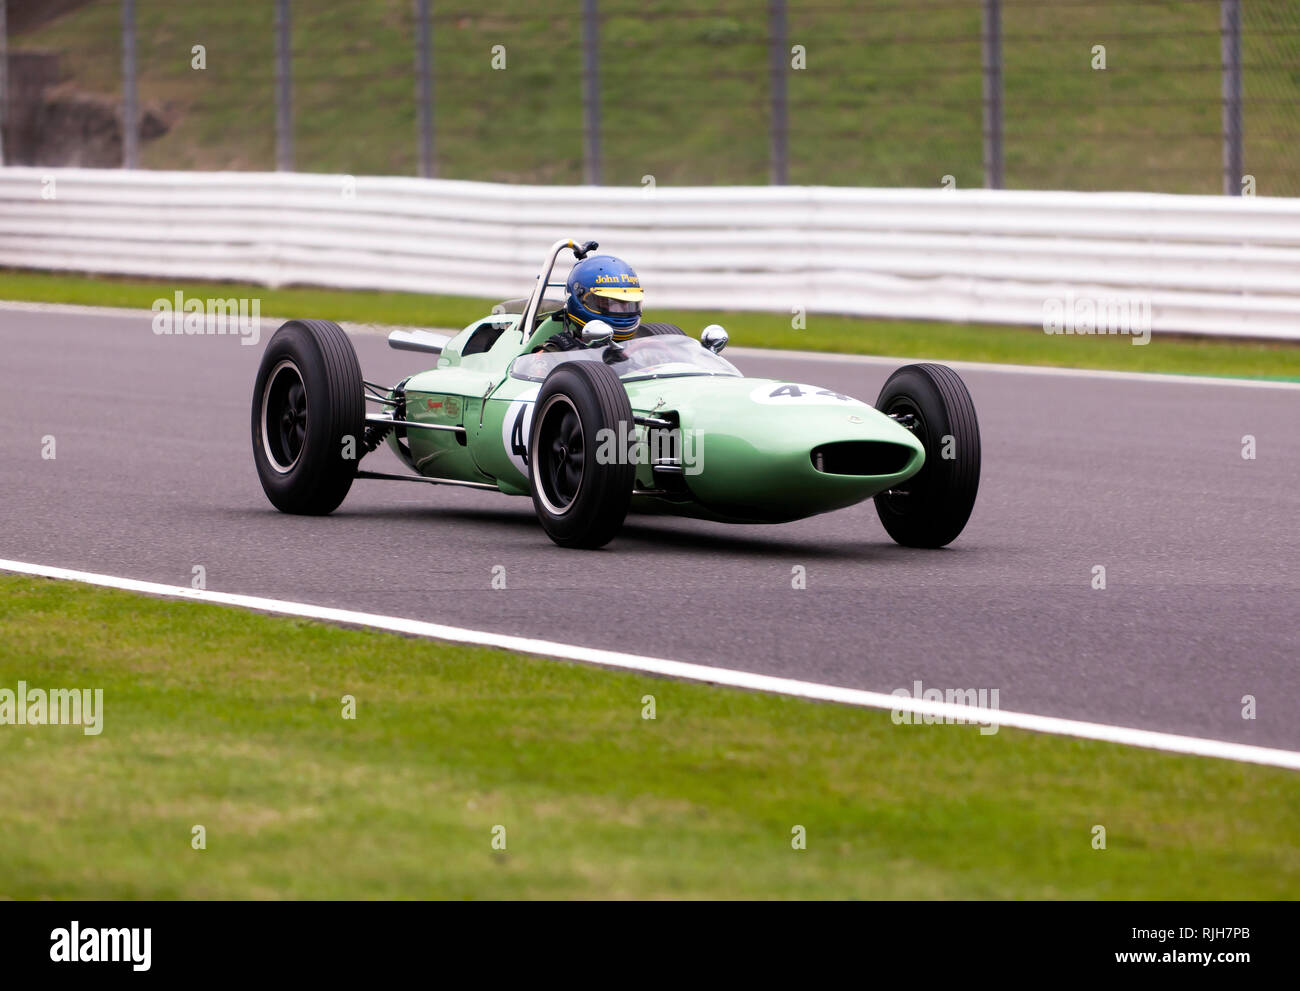 Andrew Beaumont driving his green, 1962, Lotus 24 944 during the  Maserati Trophy for HGPCA Pre'66  Grand Prix Cars, Silverstone Classic 2017 Stock Photo